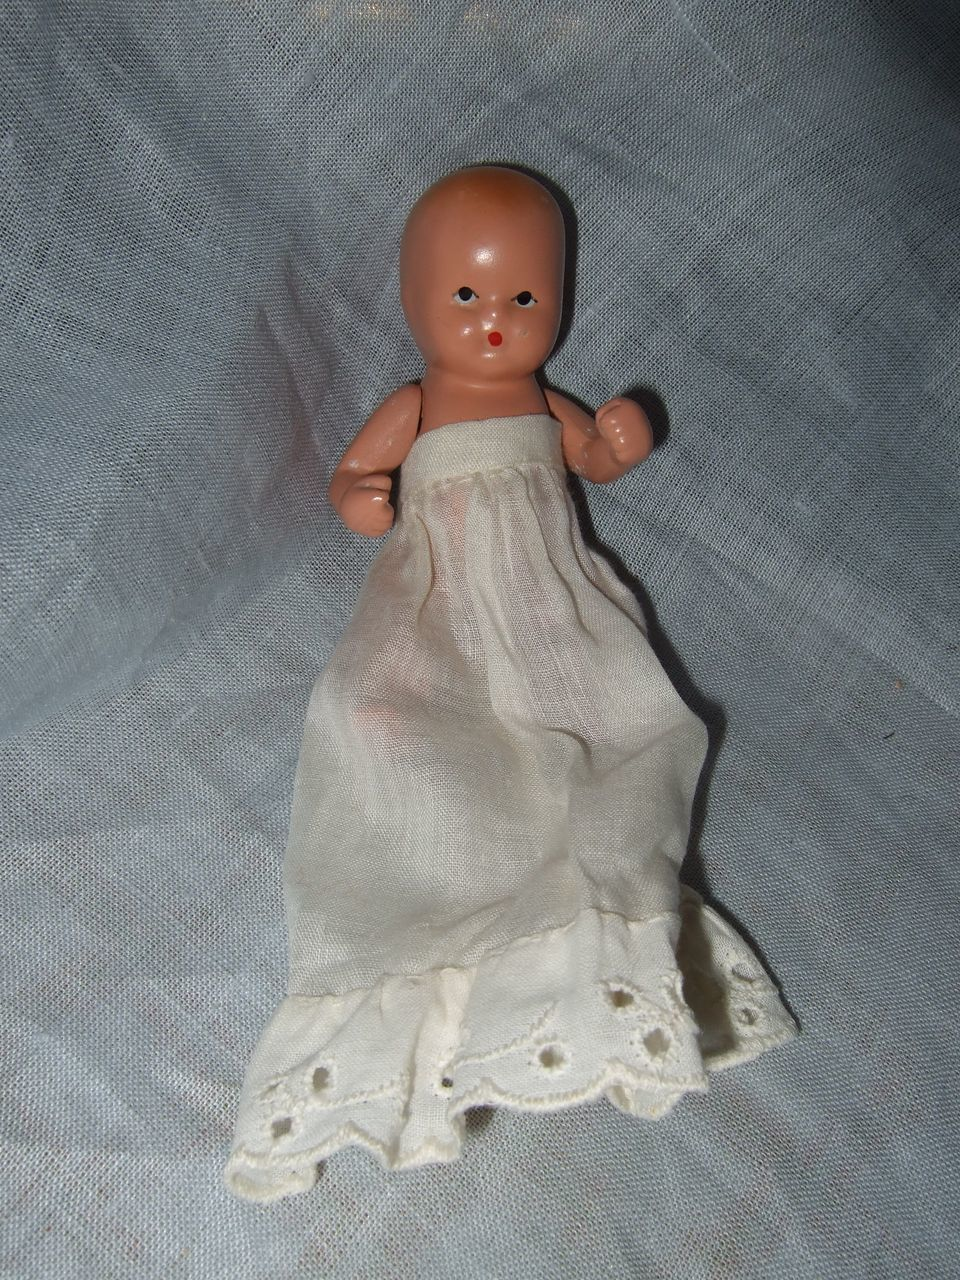 Painted bisque nancy ann storybook baby from rubylane sold on ruby